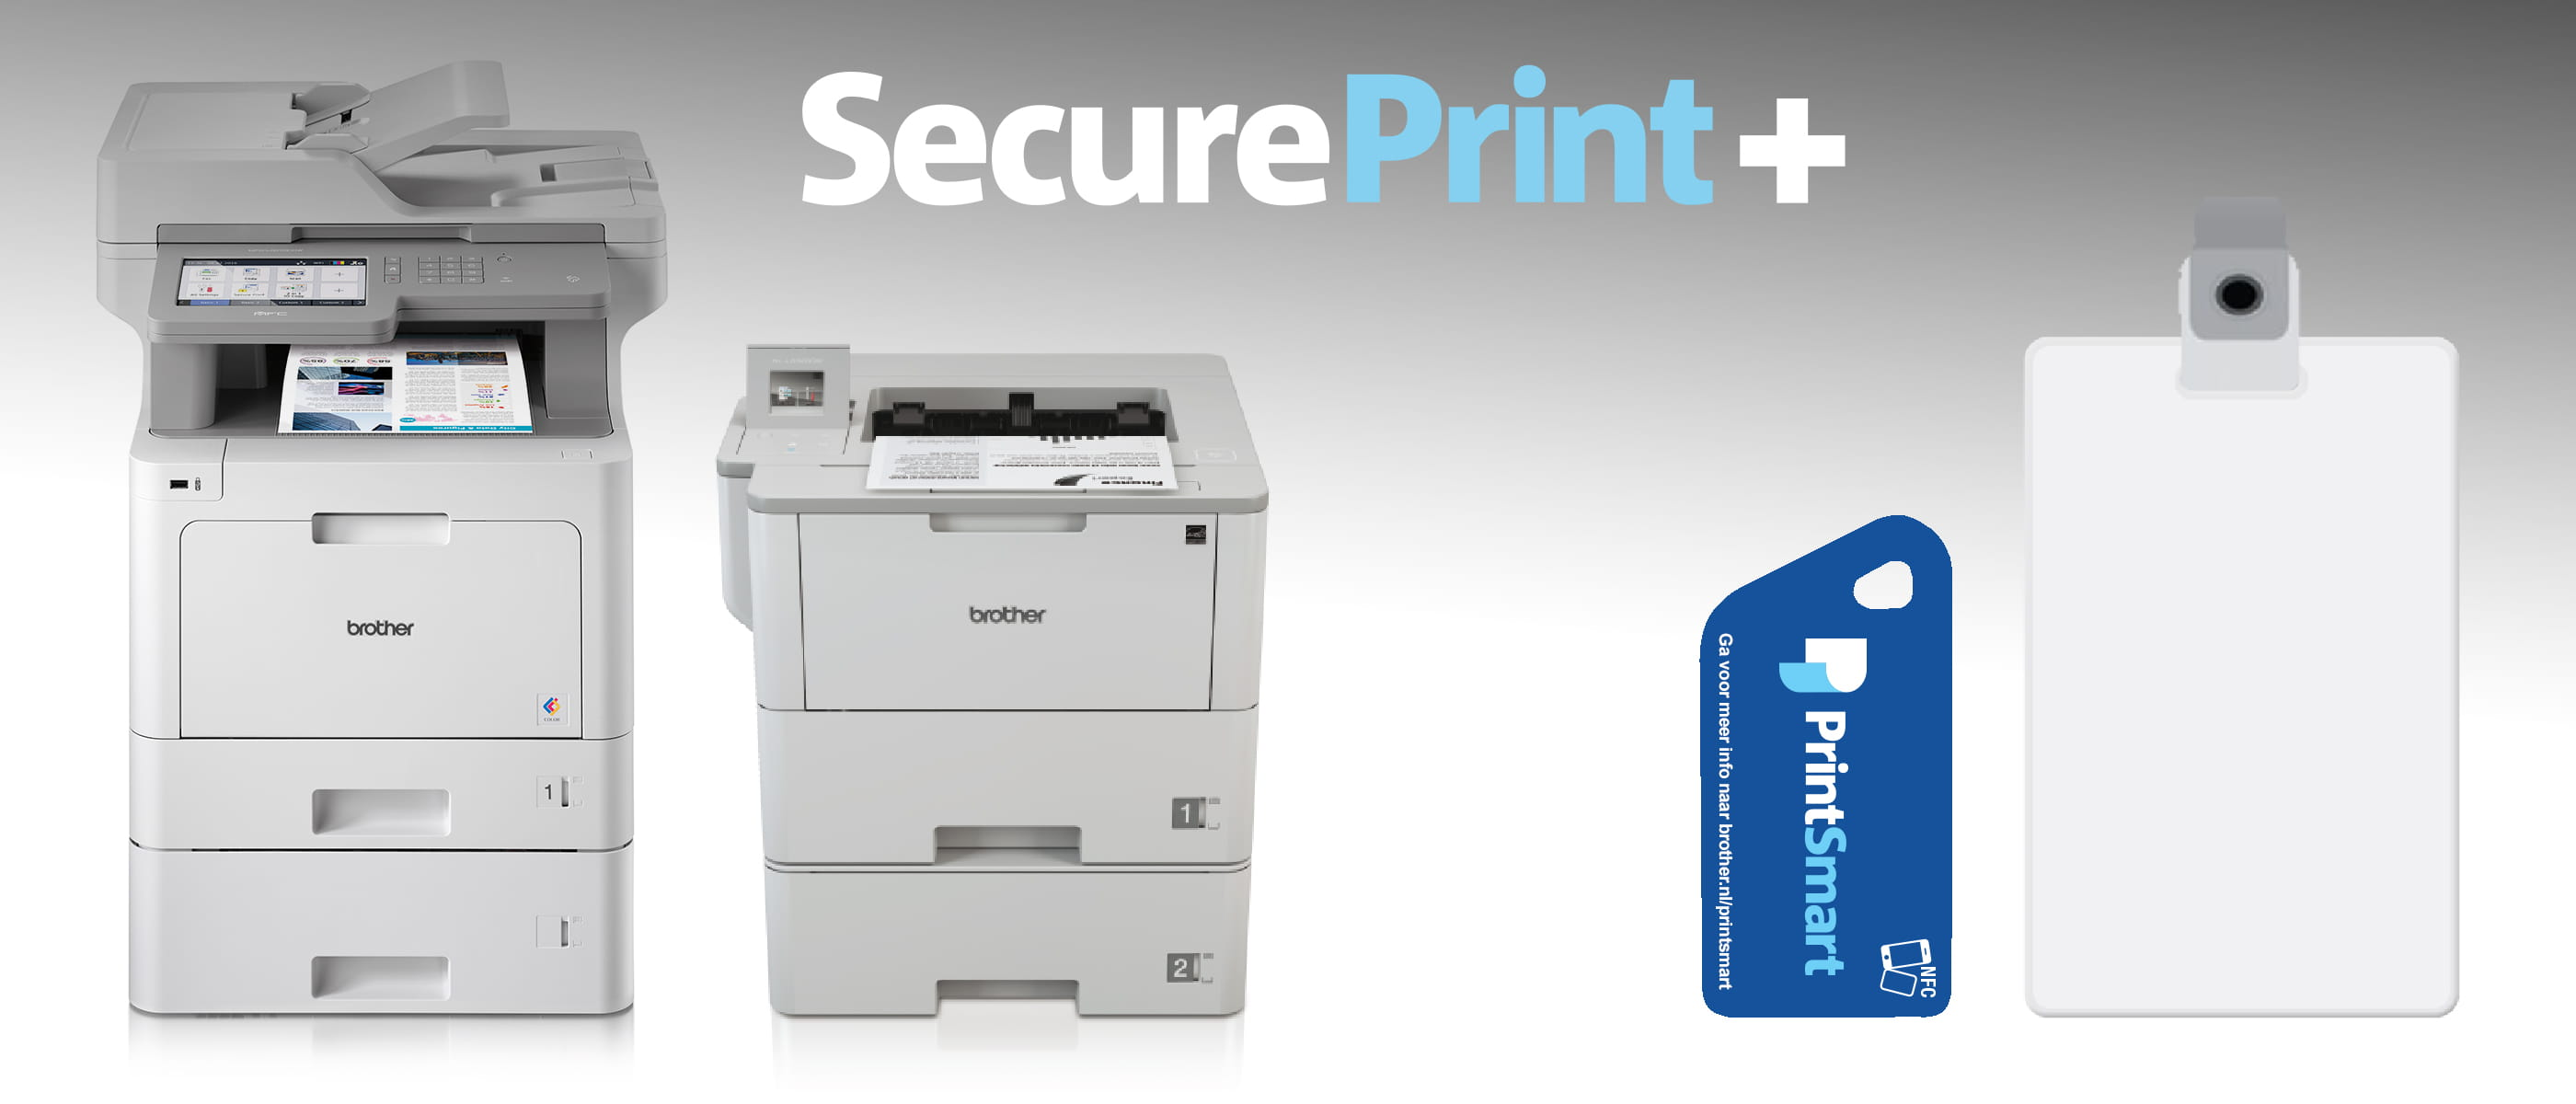 SecurePrintPlus